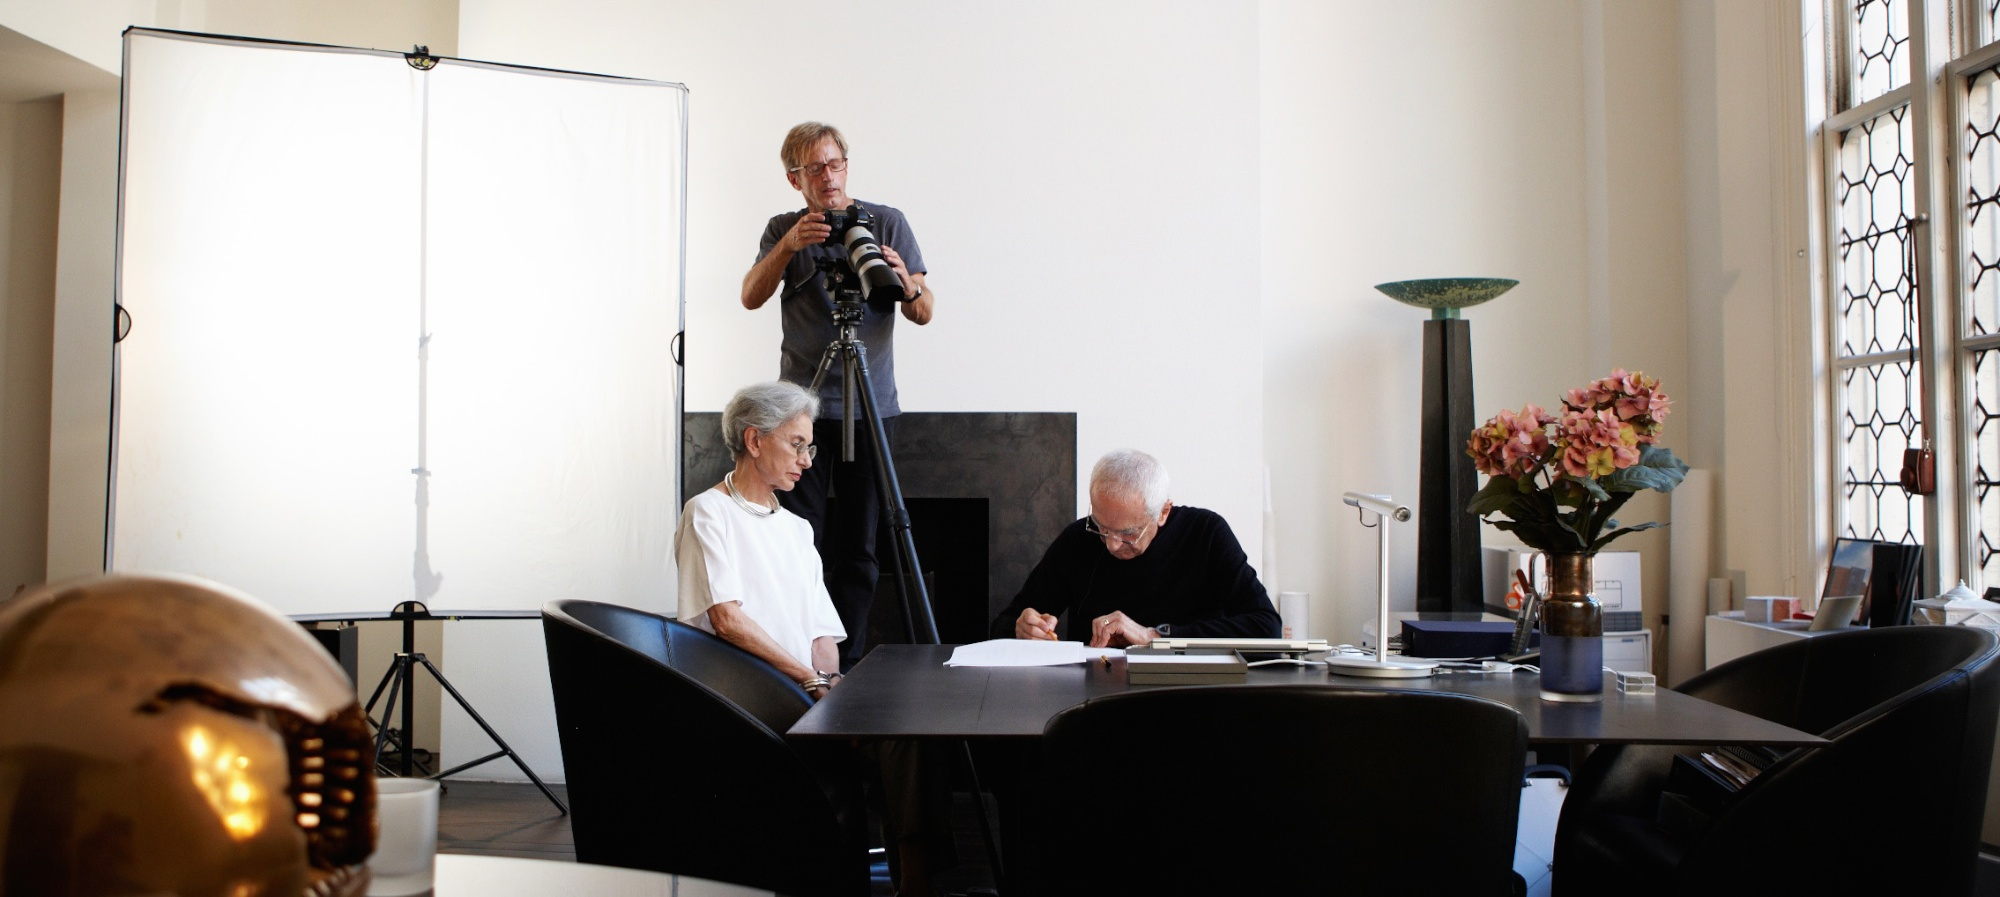 John Madere filming Massimo and Lella as Massimo sketches images of the Vignelli Center for Design Studies interior